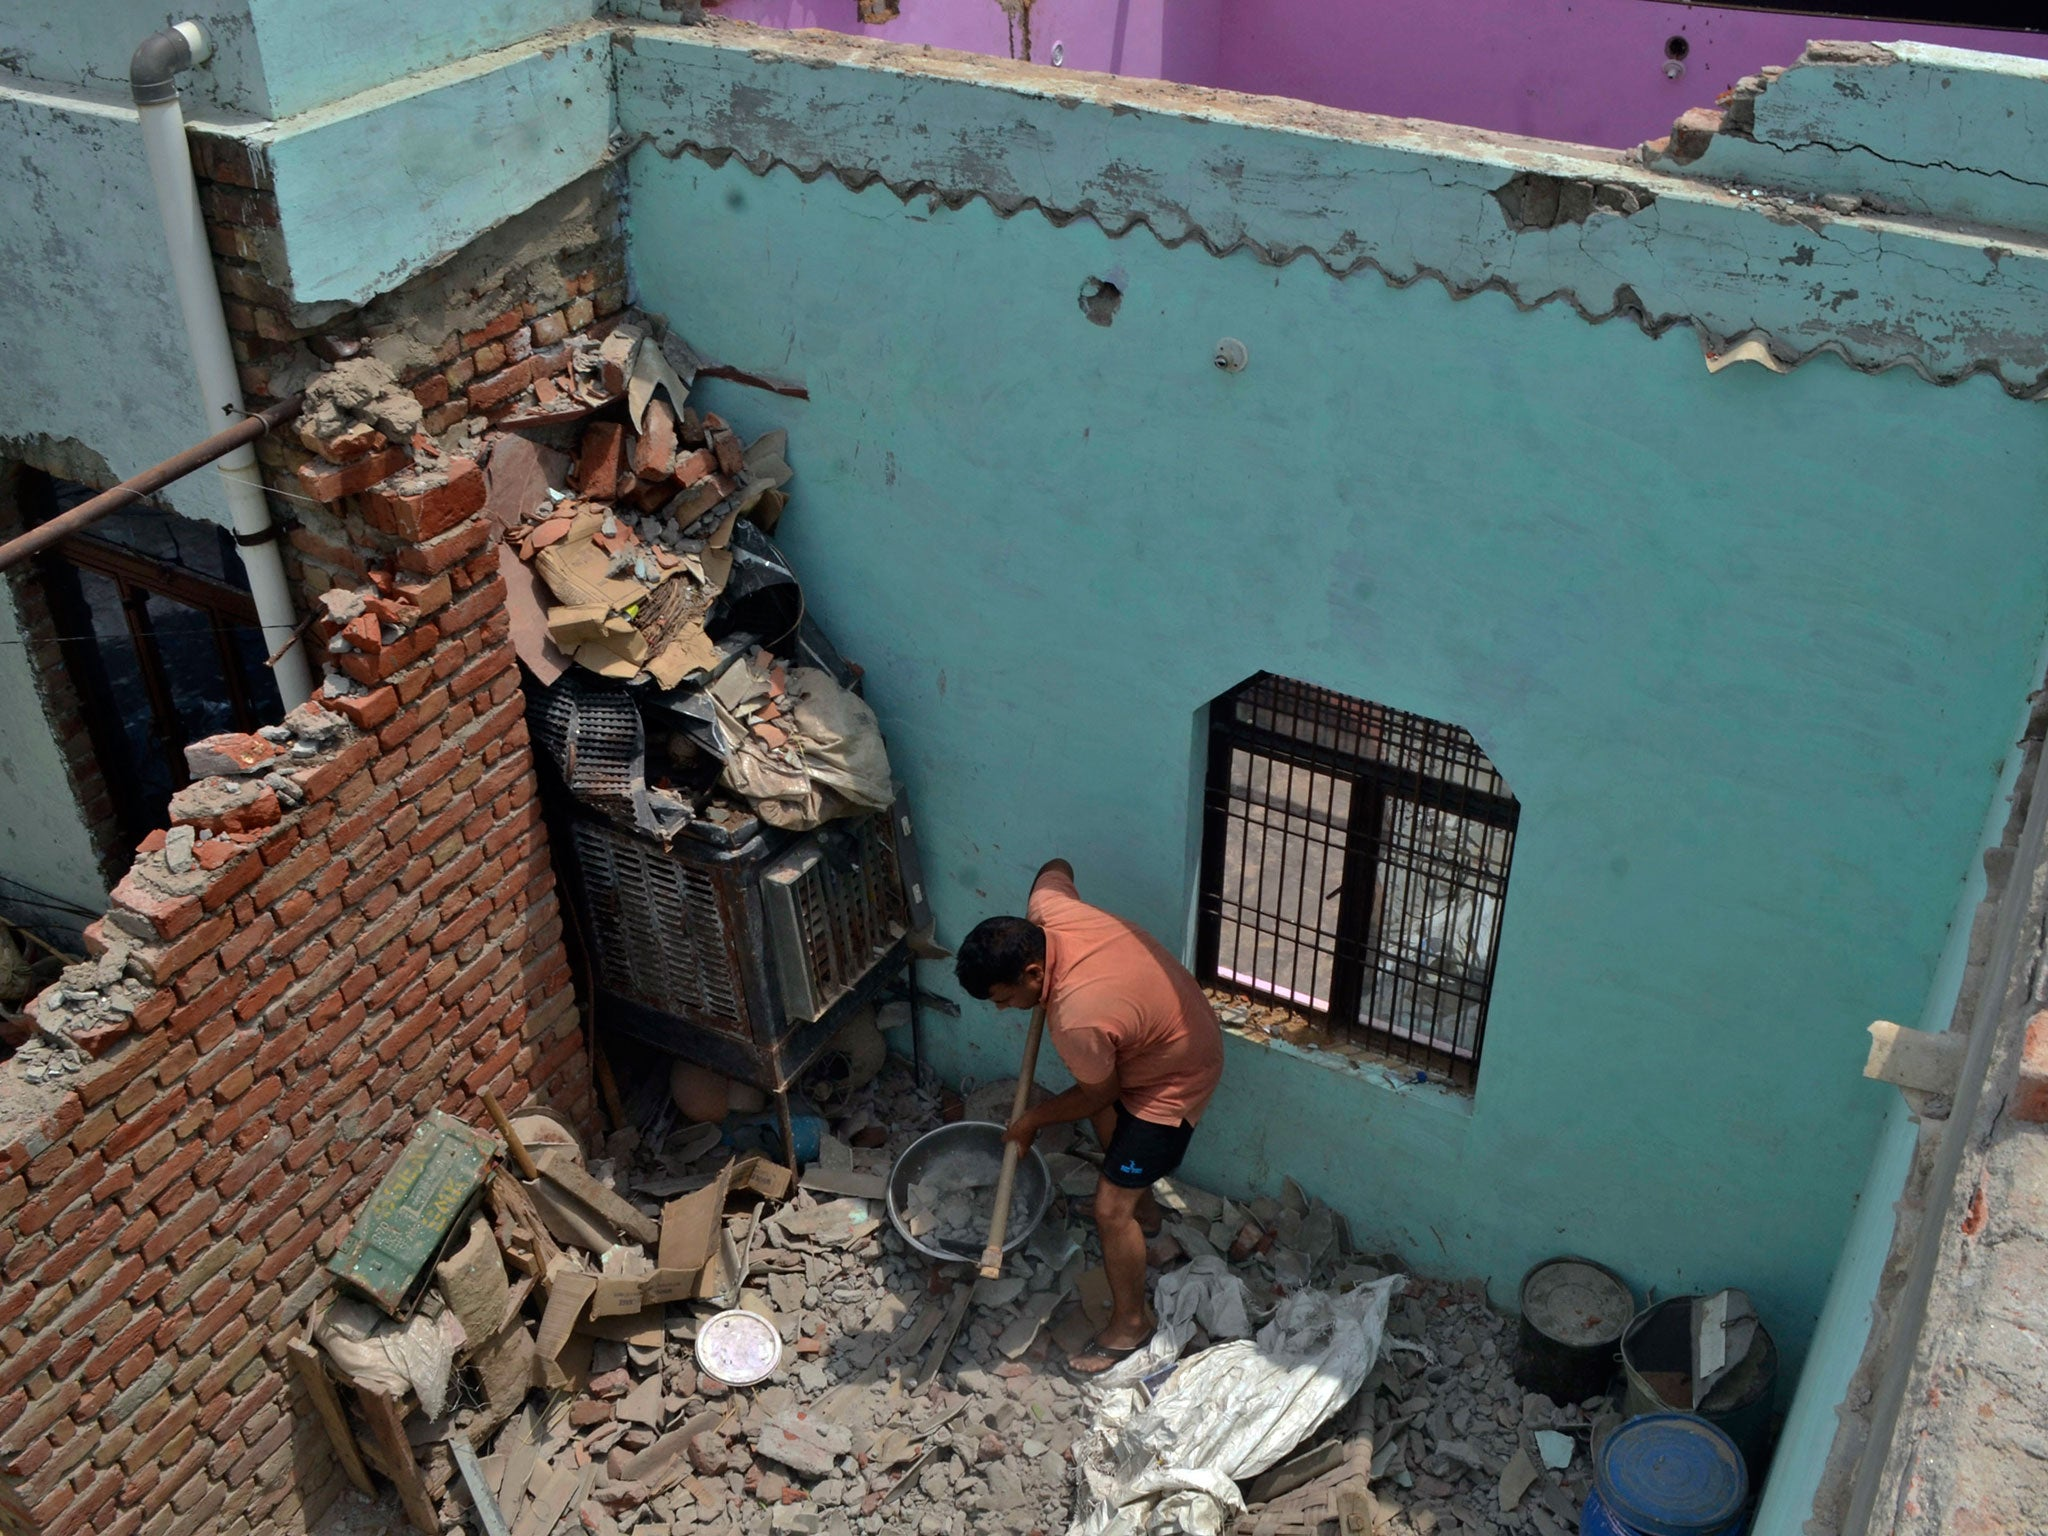 India storms: Extreme weather kills 54 as strong winds bring down trees, homes and power lines